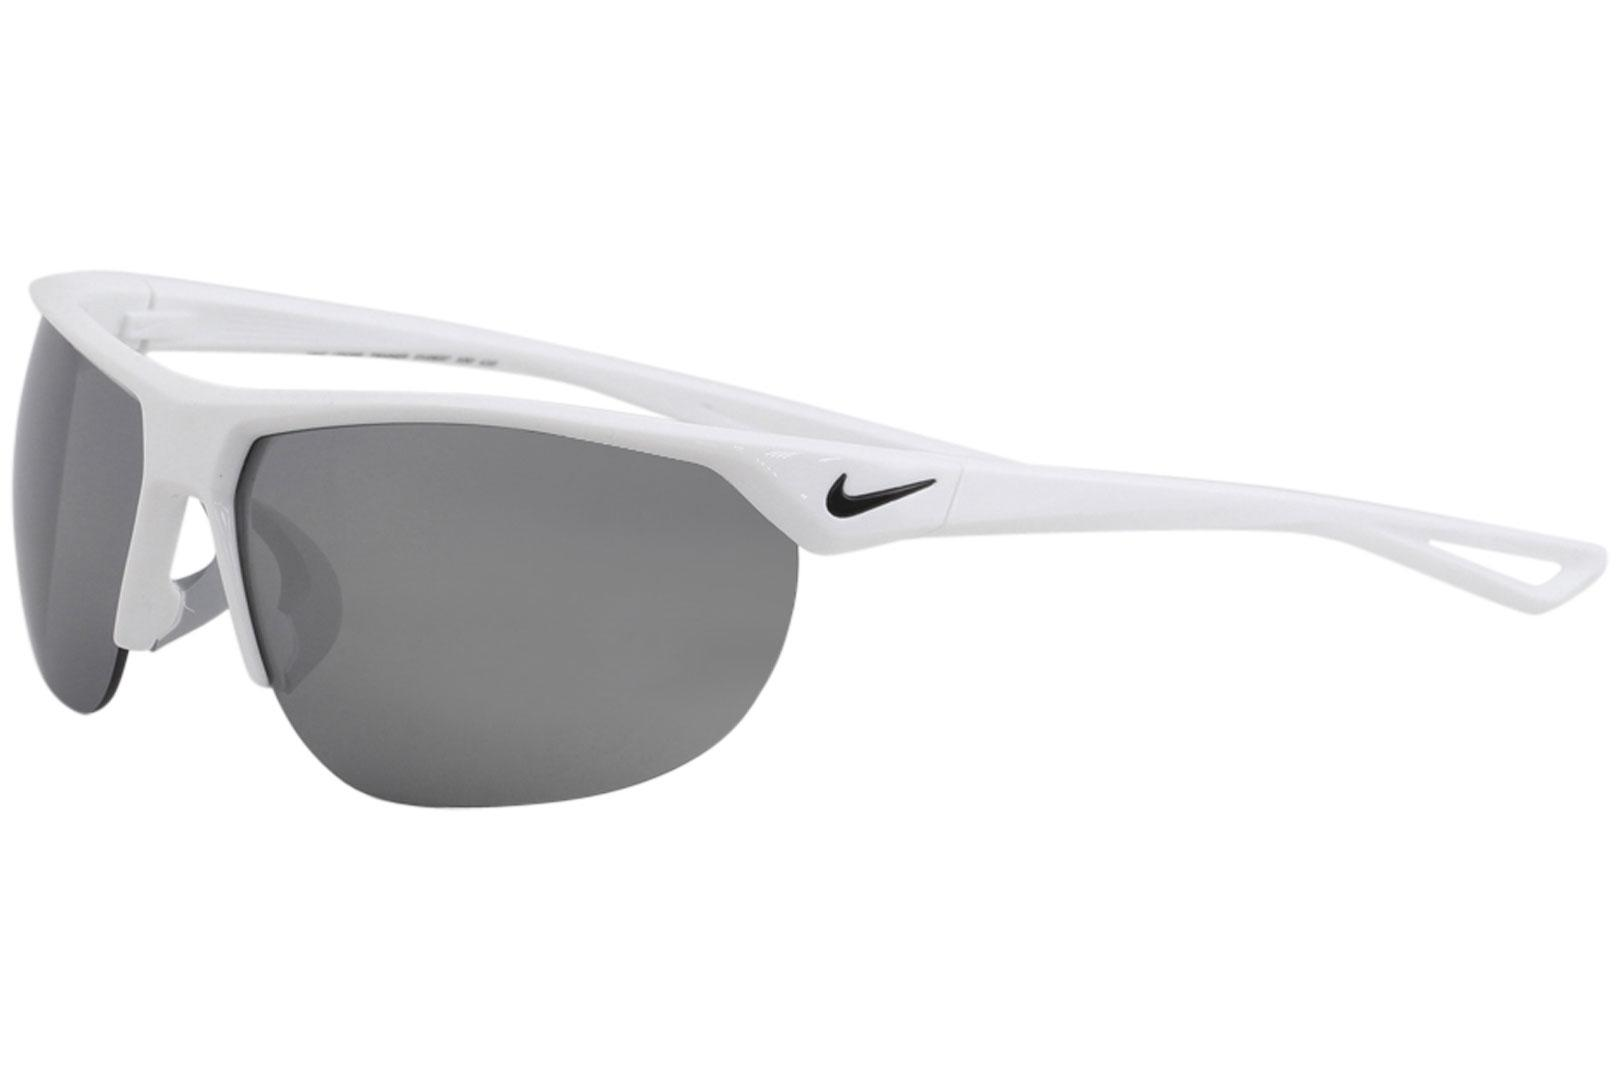 2858340dd91 Nike Cross Trainer Men s Sunglasses Fashion Rectangle Frame